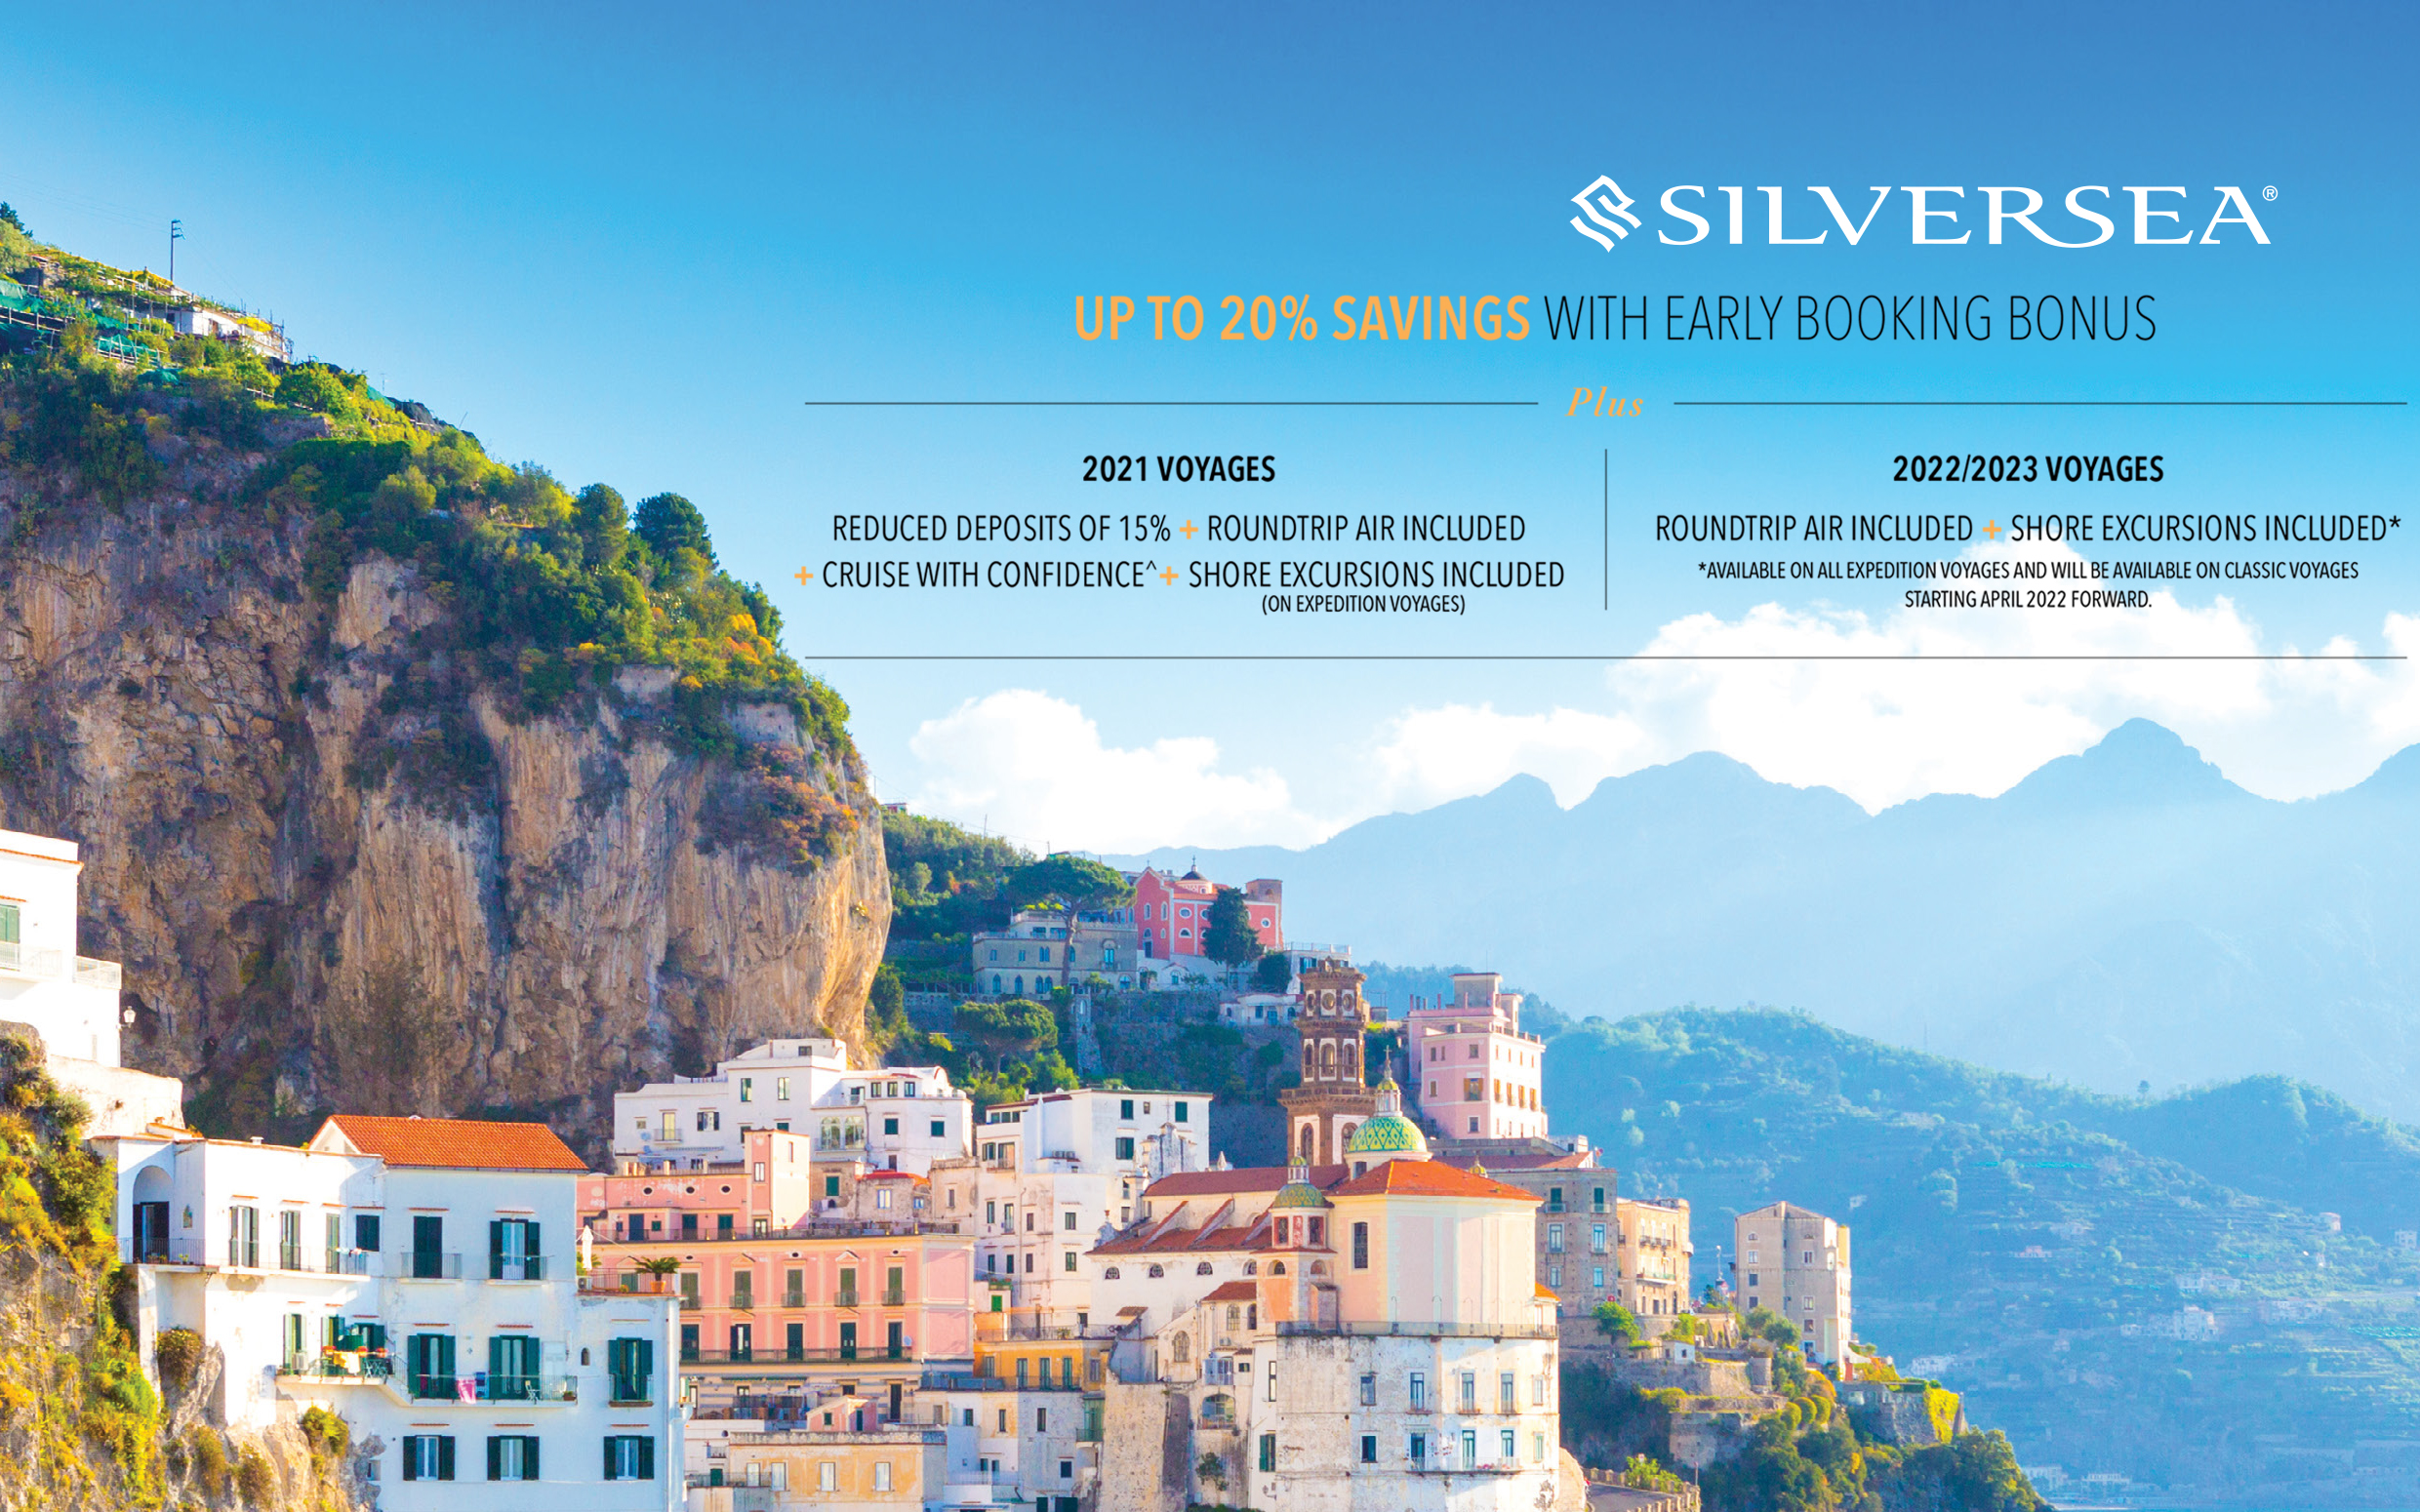 Silversea - Up to 20% Savings with Early Booking Bonus + Roundtrip Air* + Up to $600 Shipboard Credit